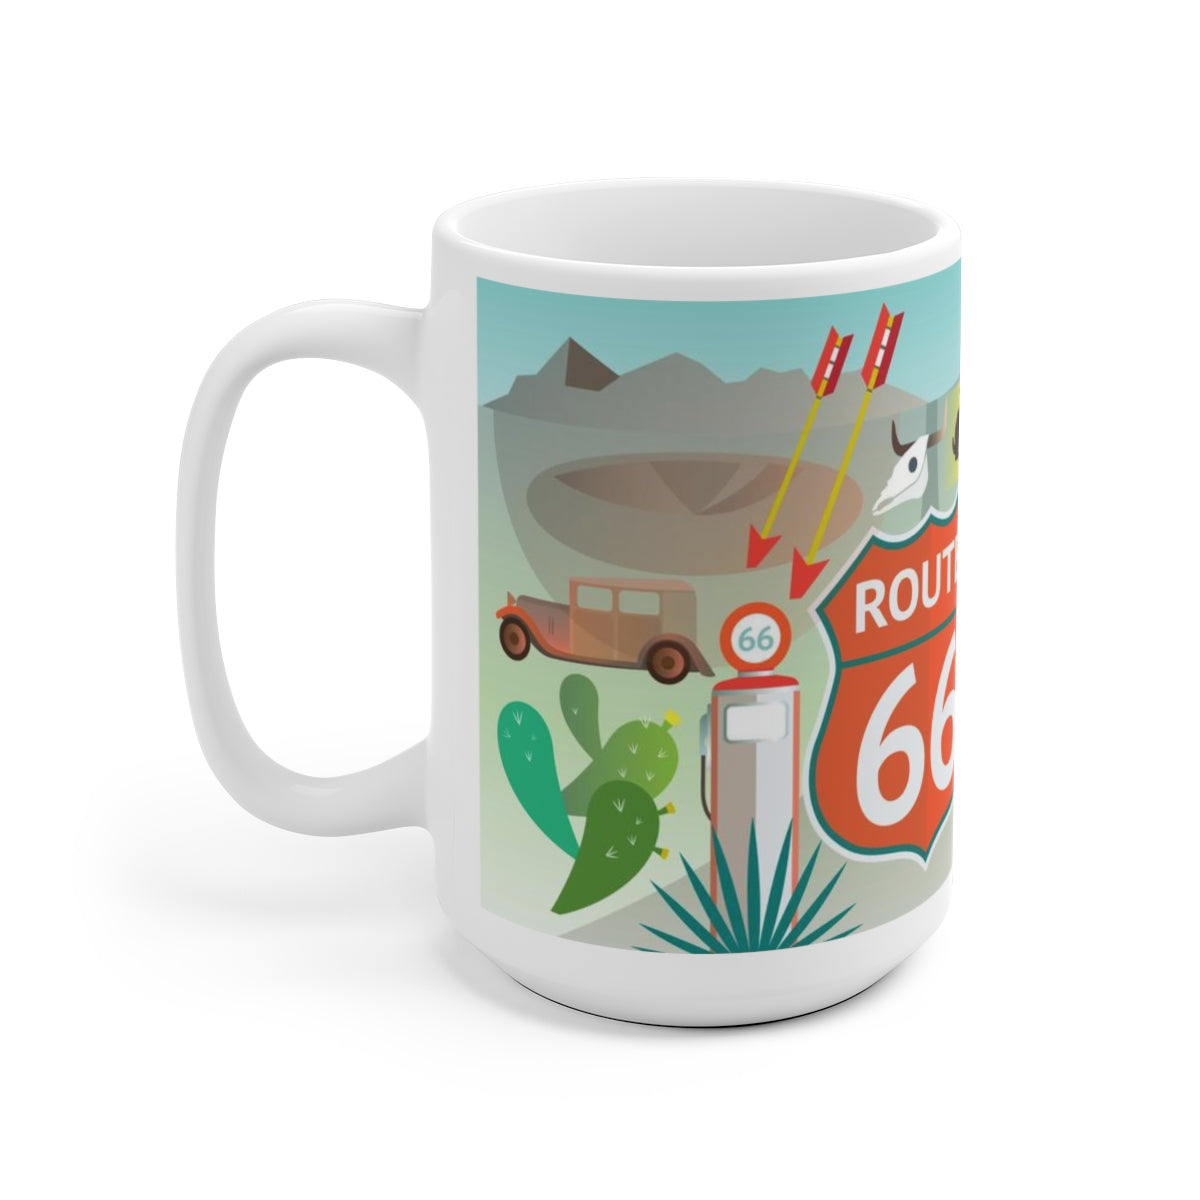 ROUTE 66 15 OZ CERAMIC MUG